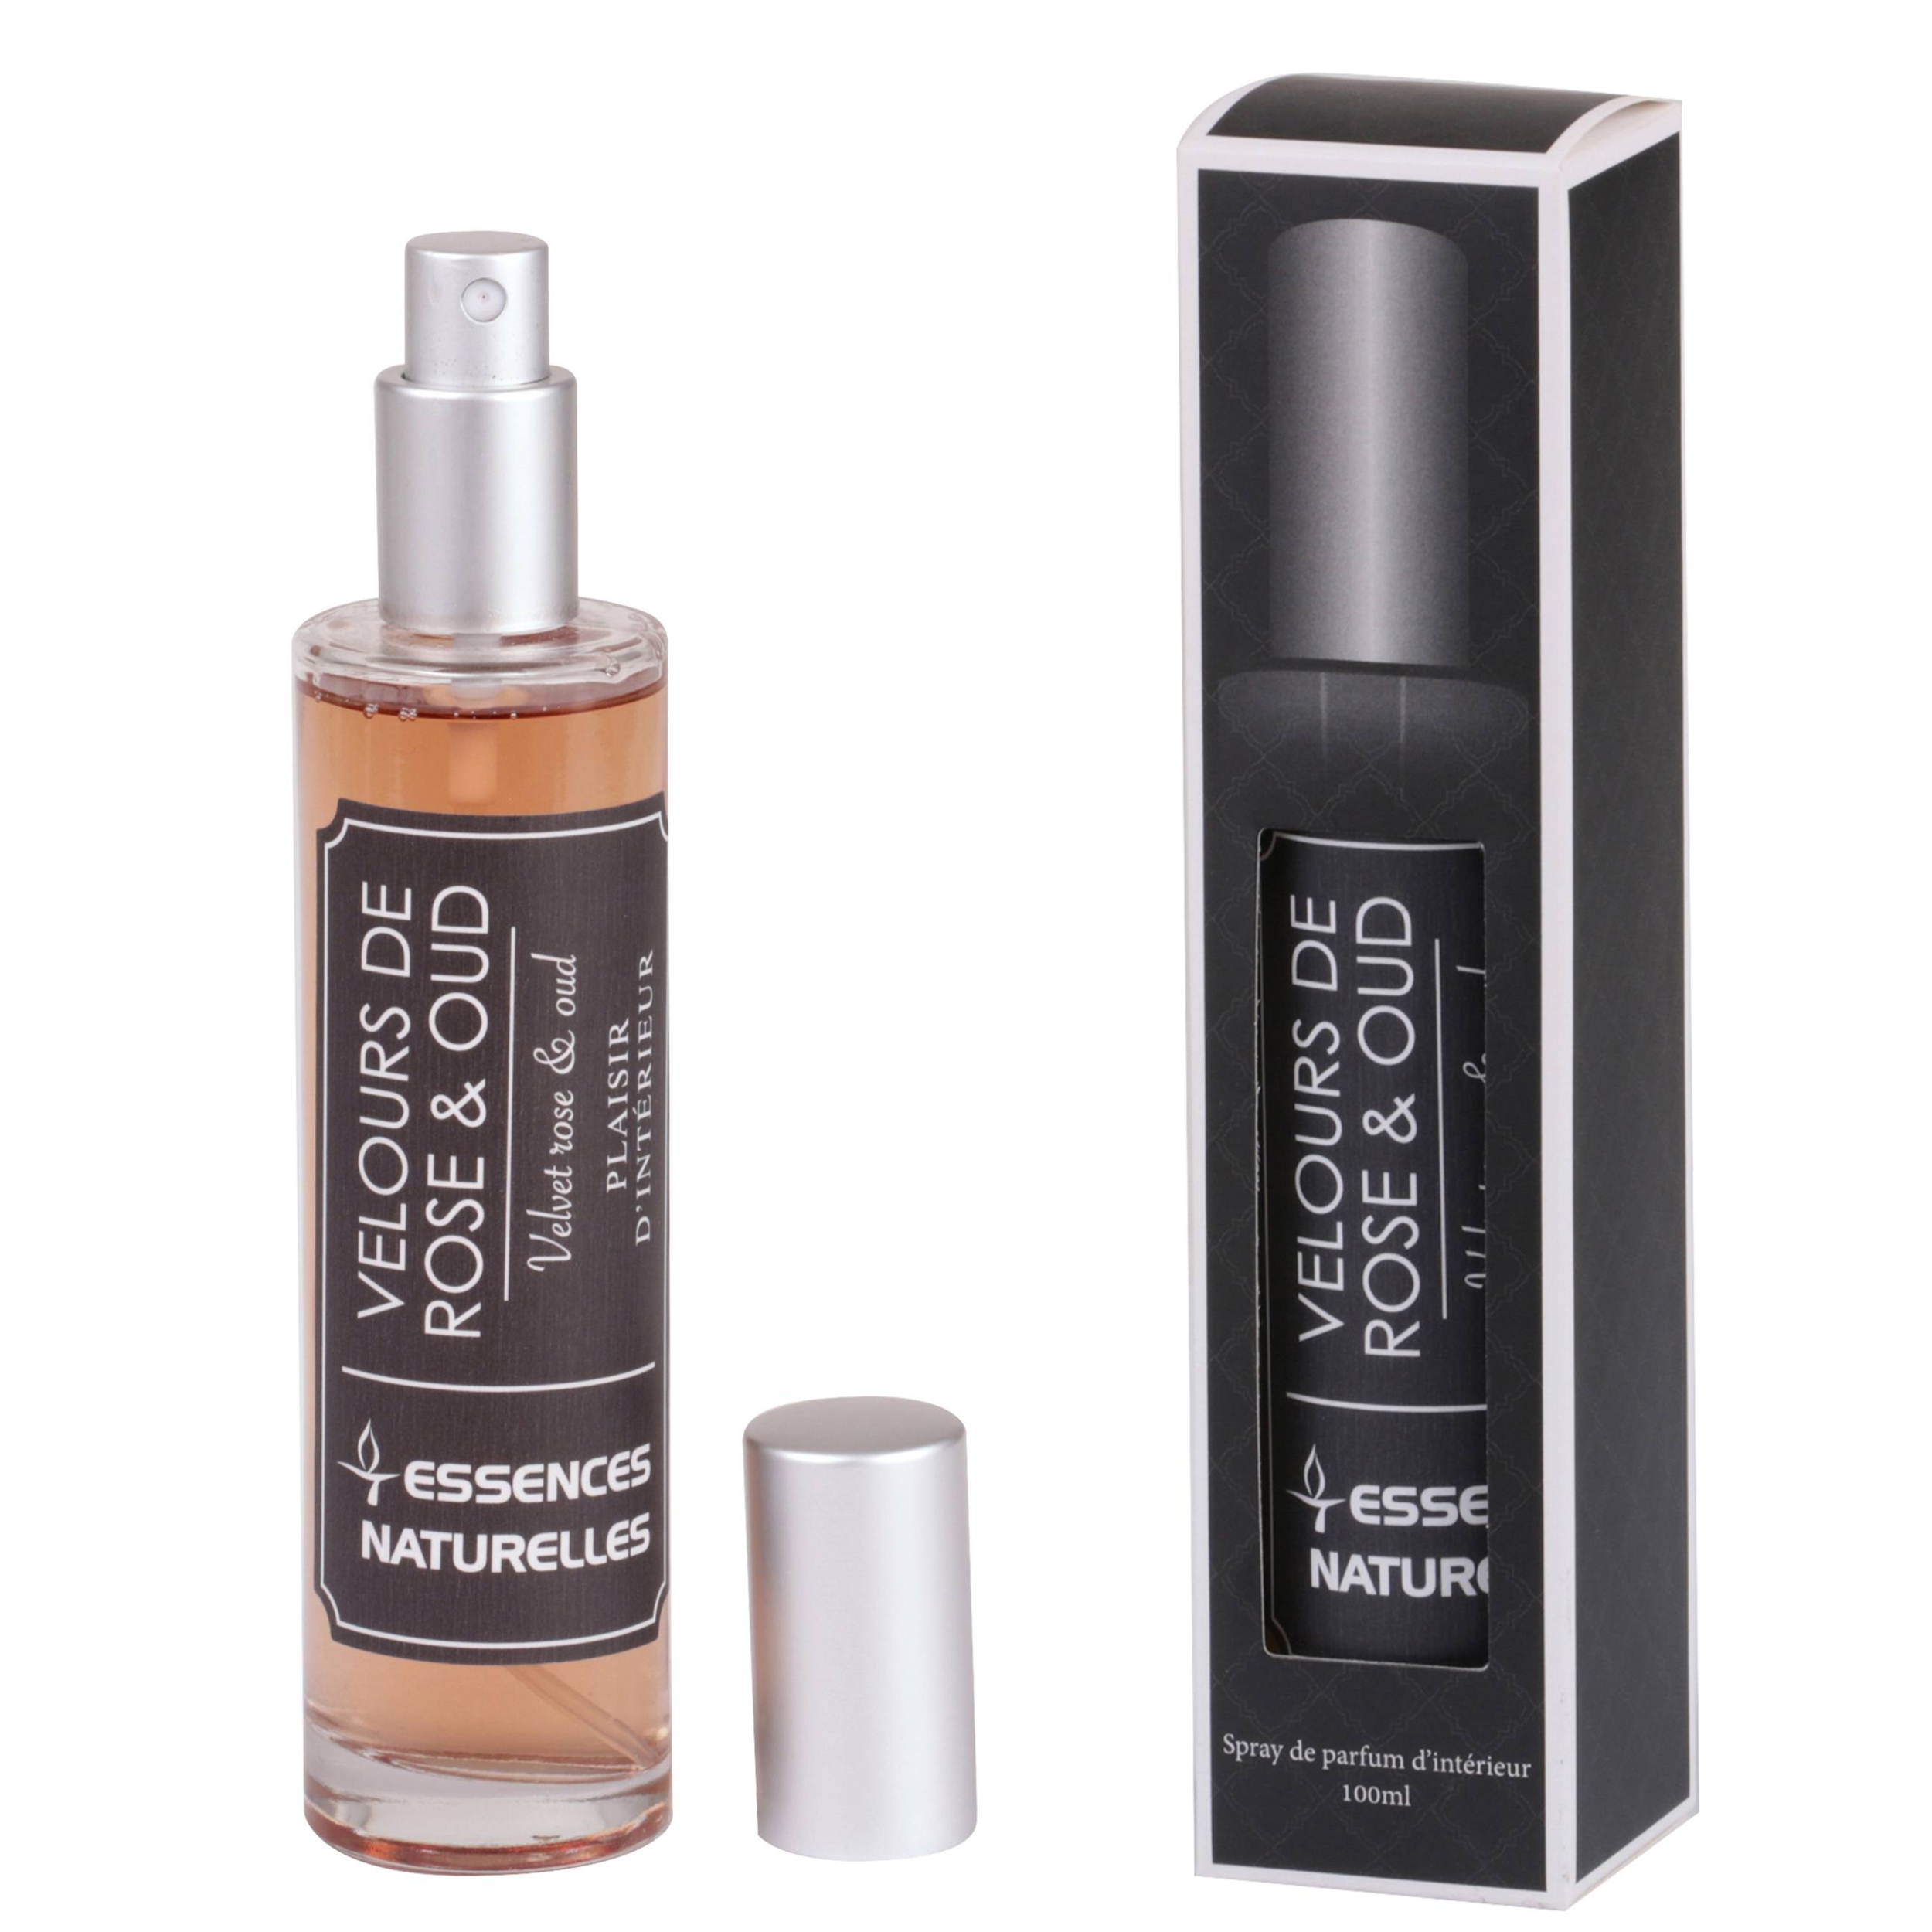 DIFFUSEUR_DE_PARFUM_EN_SPRAY_100ML_VELOURS_DE_ROSE___OUD_30550